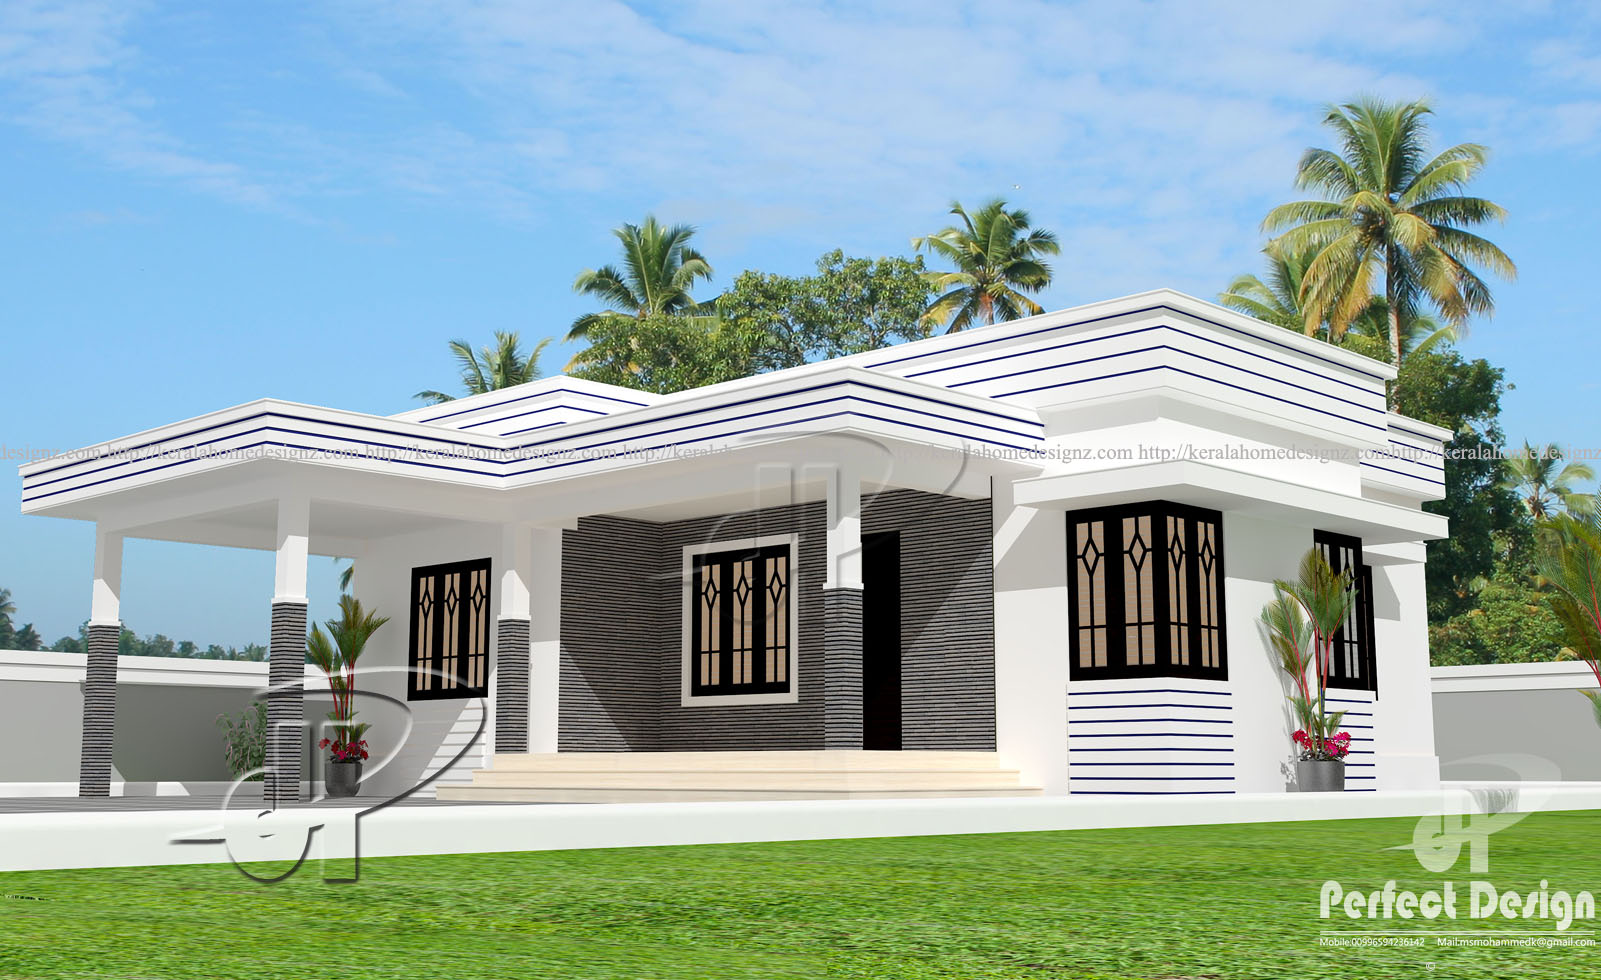 Perfect Kerala Home Design Image home design images read more perfect home garden design ideas photos luxury perfect home design perfect Ft Modern Home Design